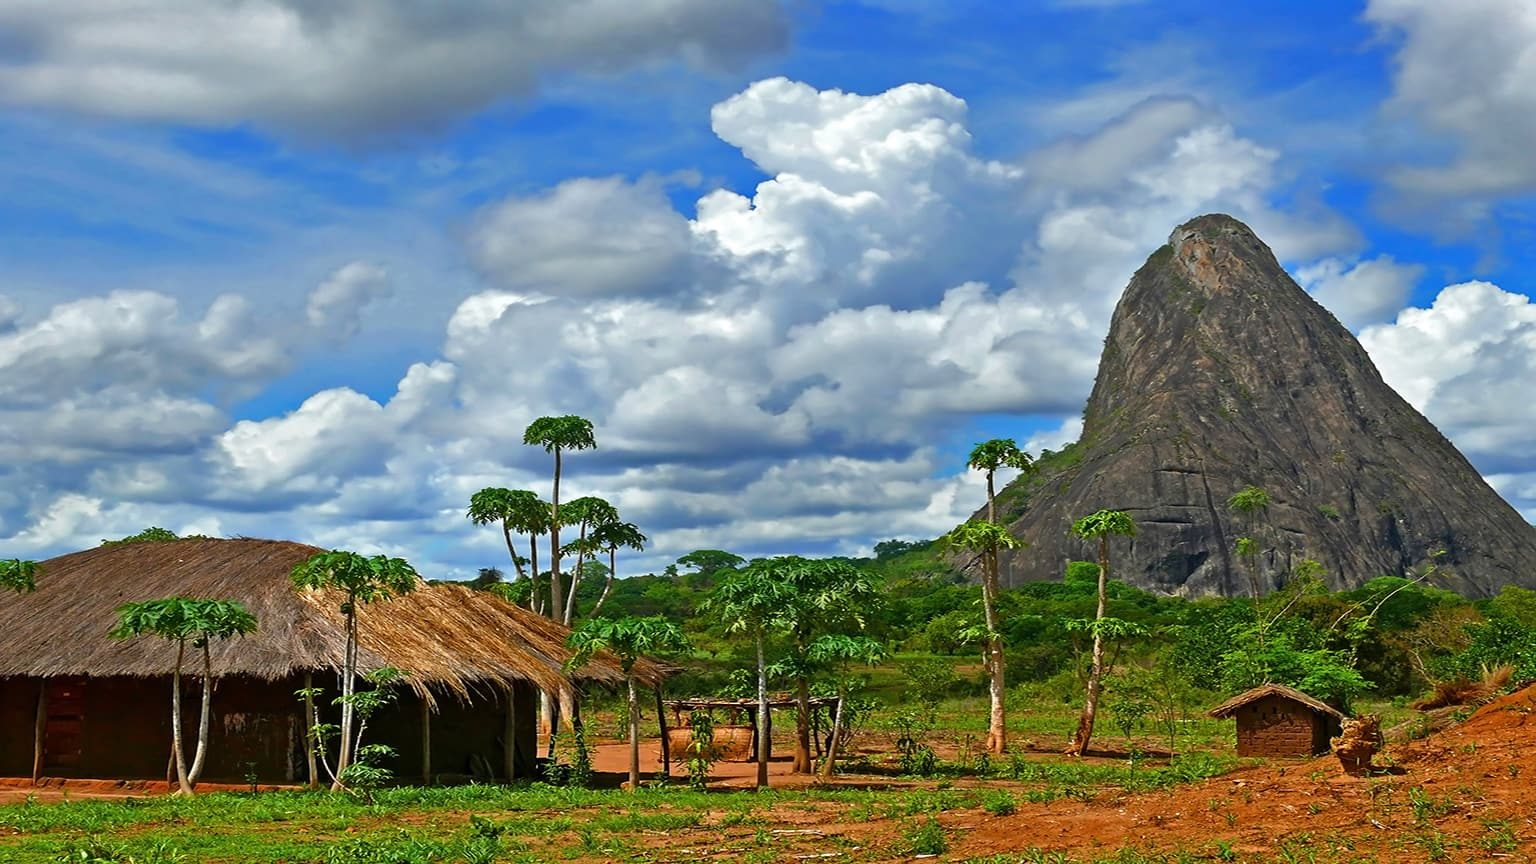 Village with a fabulously beautiful landscape in Mozambique